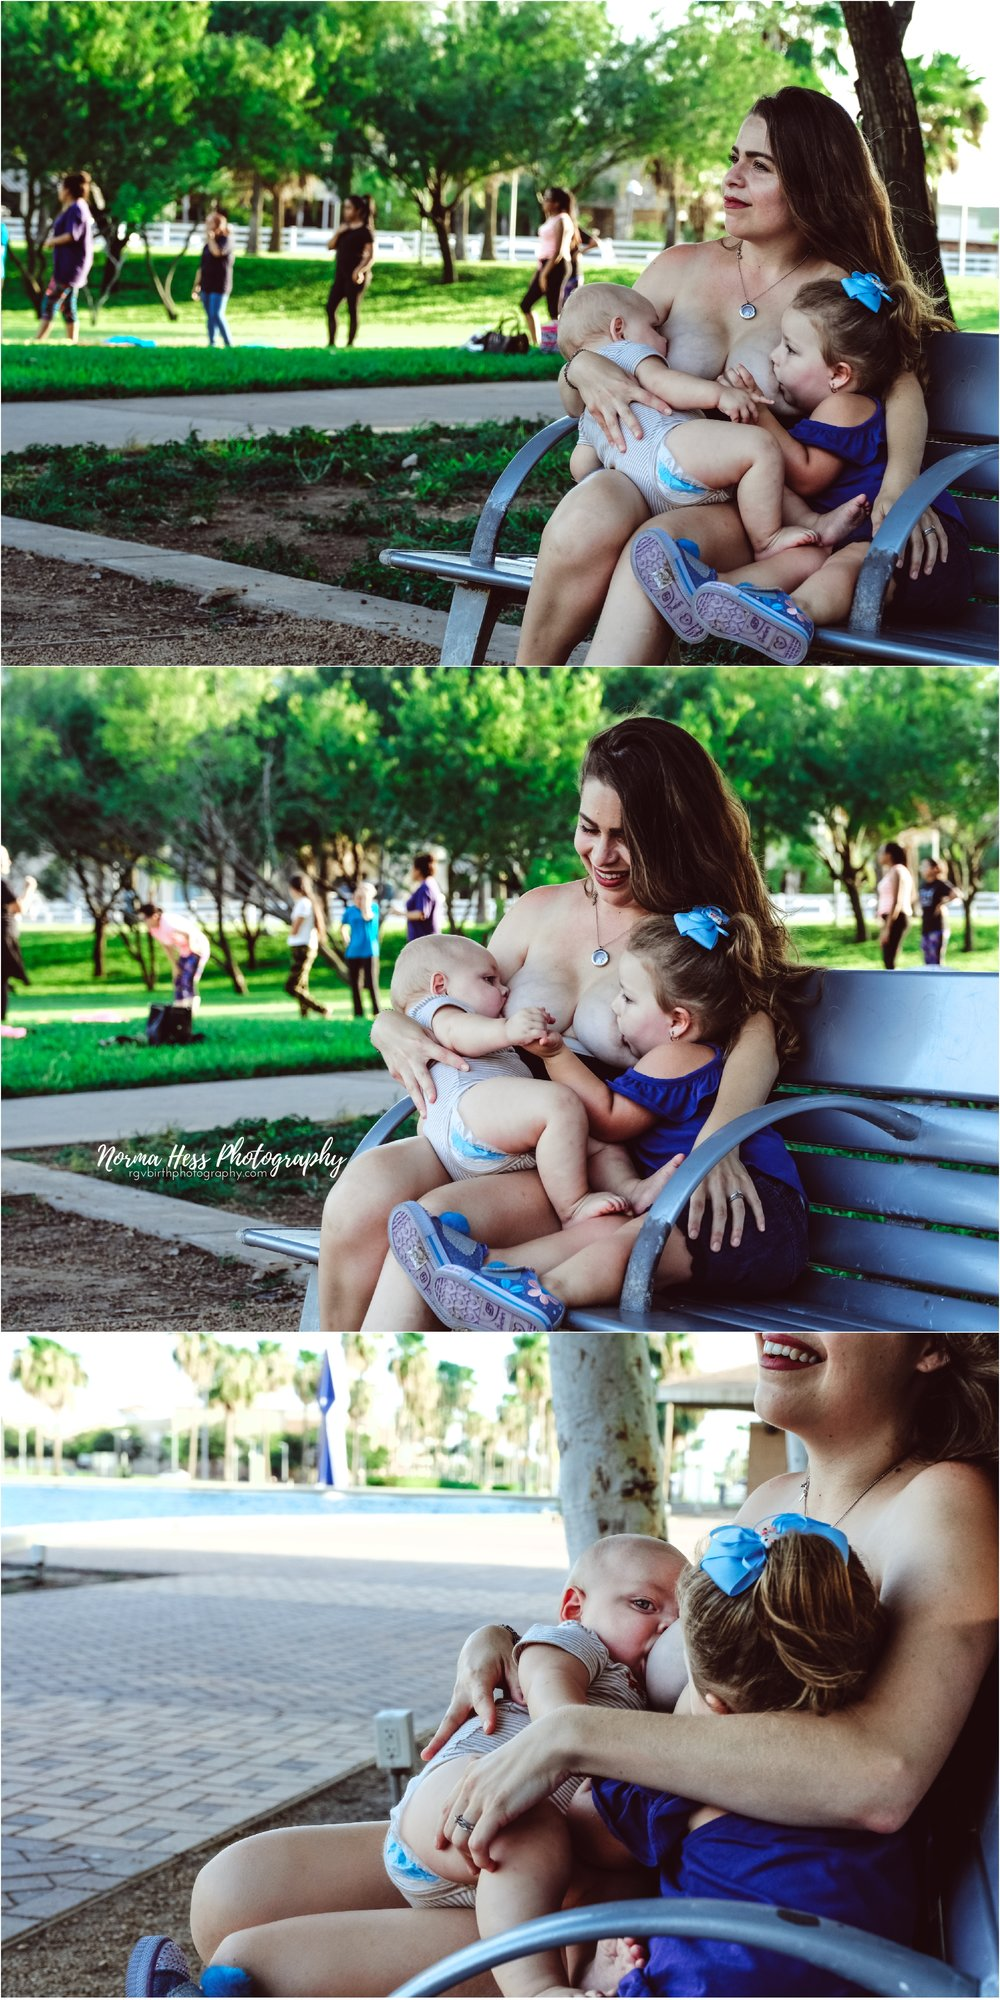 Tandem nursing in McAllen, TX | Breastfeeding Photography Sessions by Norma Hess Photography | rgvbirthphotography.com